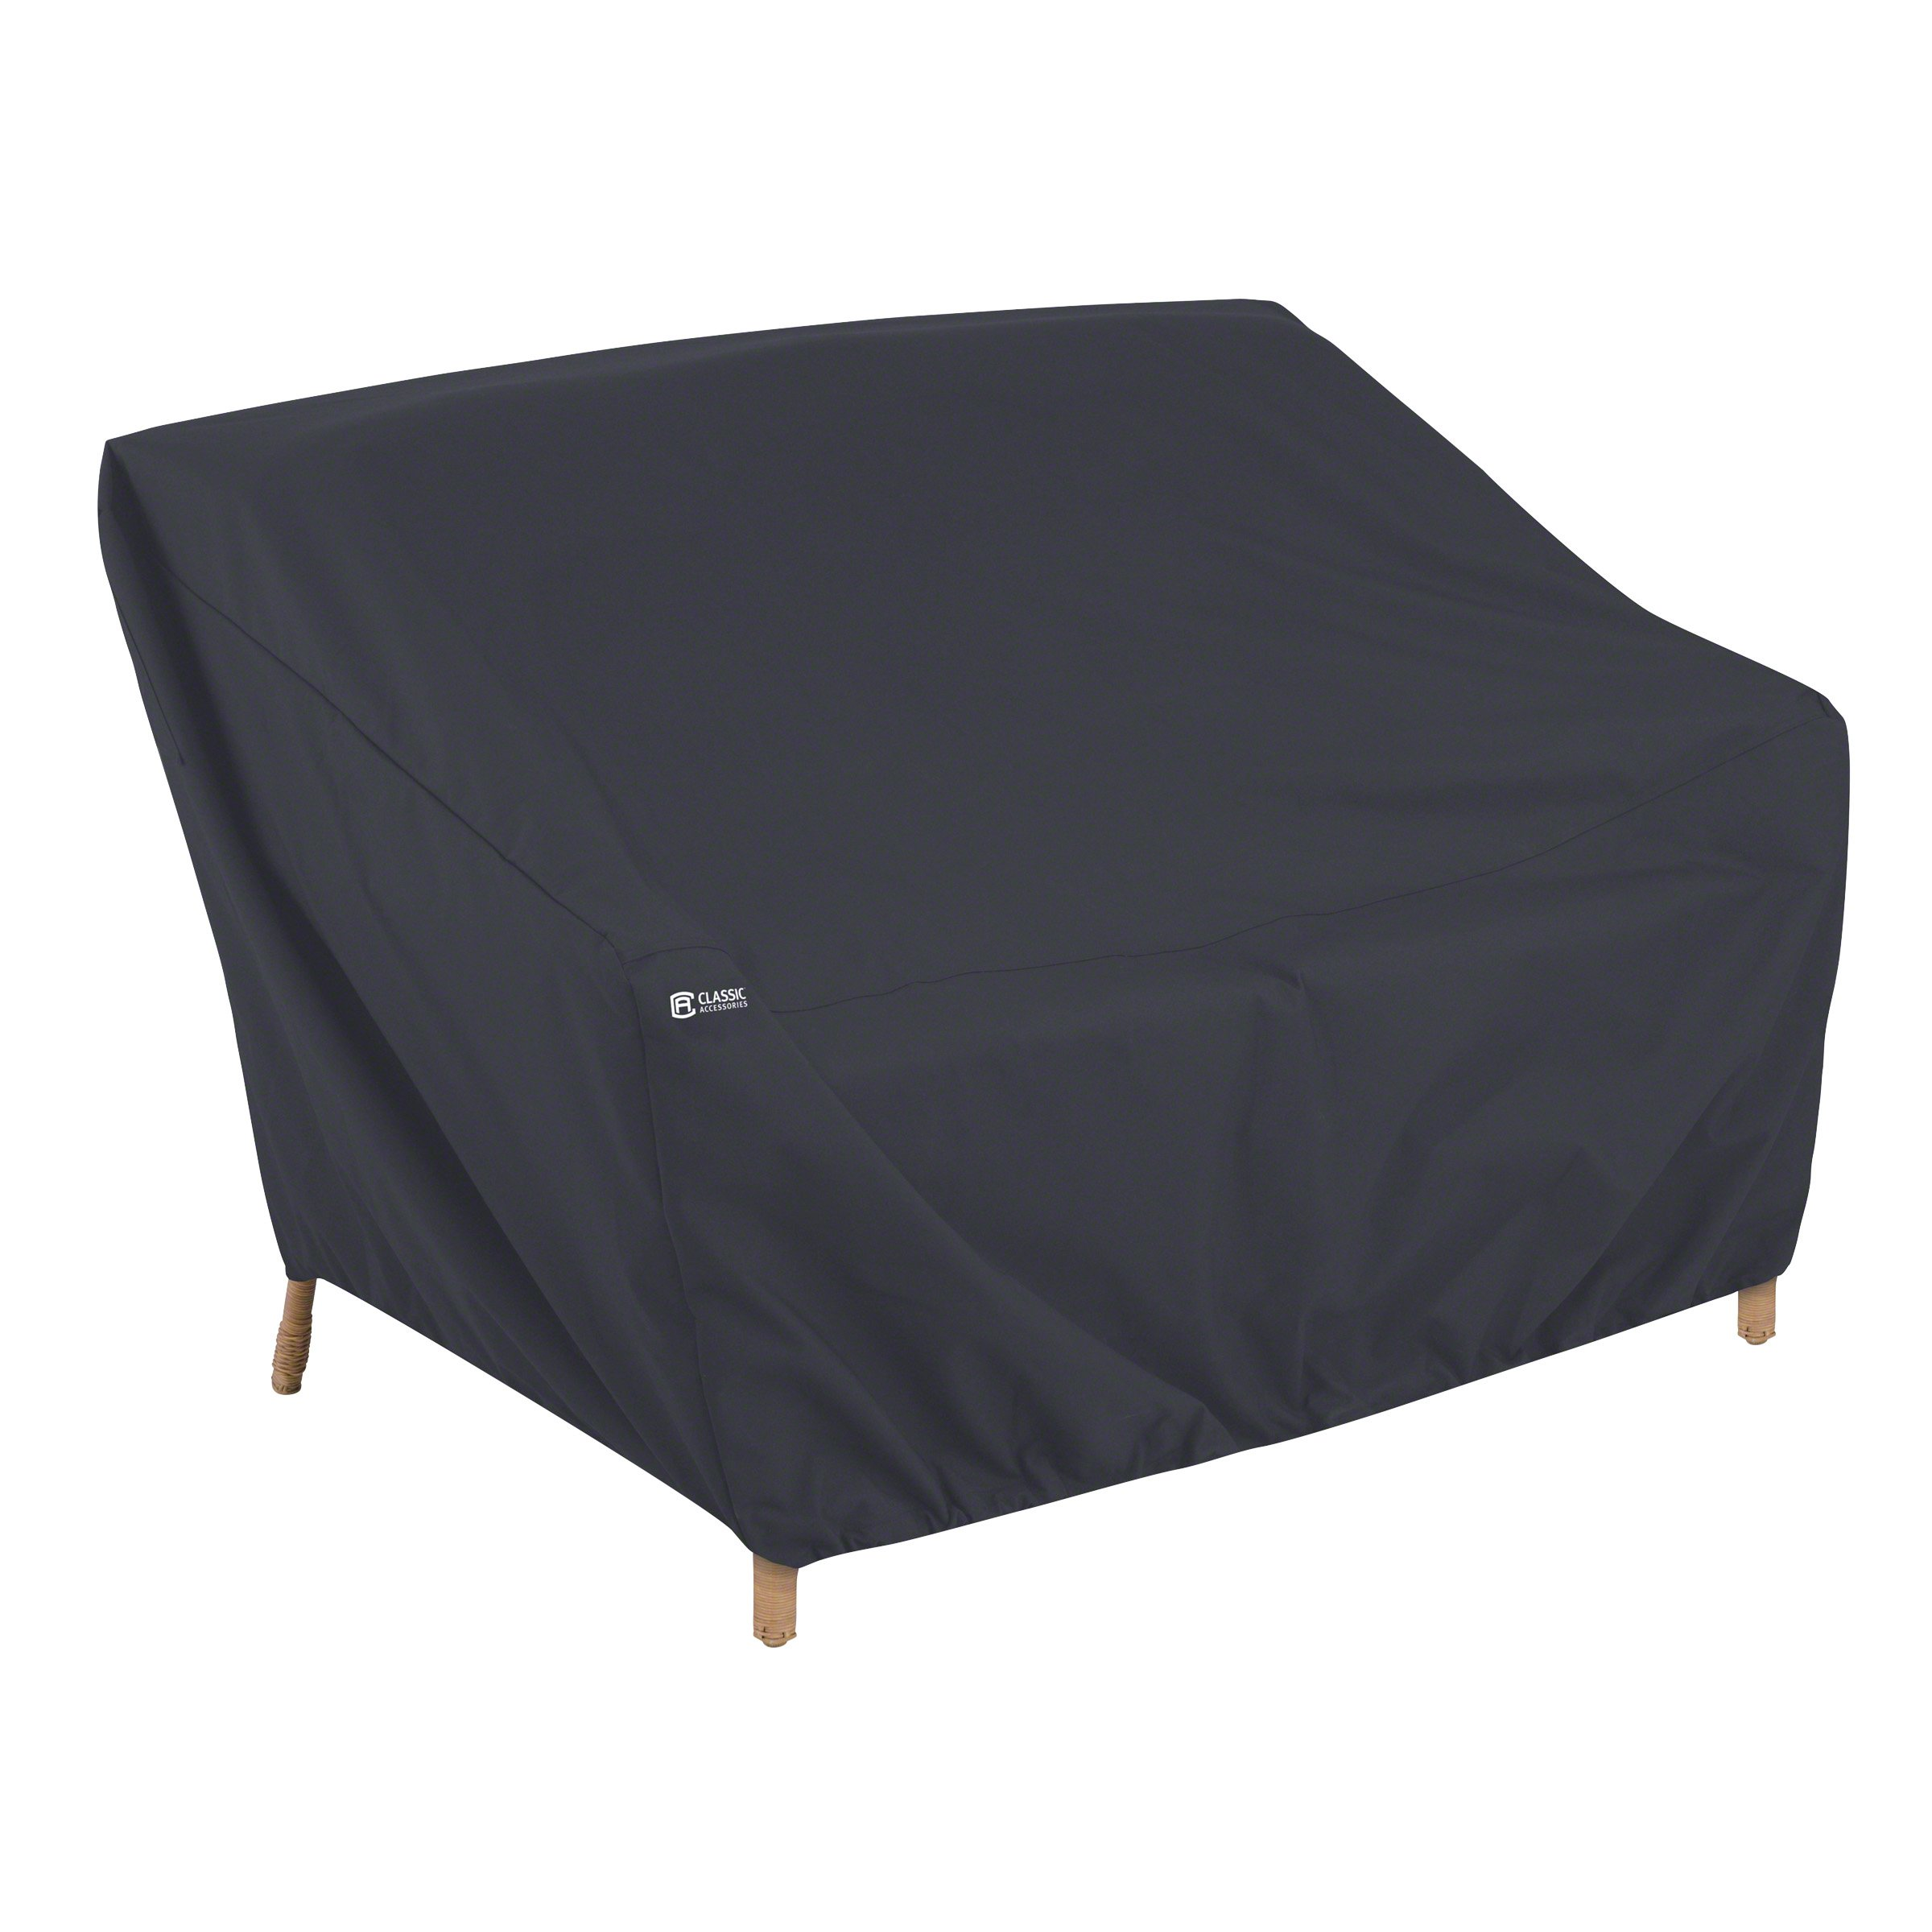 Classic Accessories Patio Loveseat/Bench/Sofa Cover, Black, Small by Classic Accessories